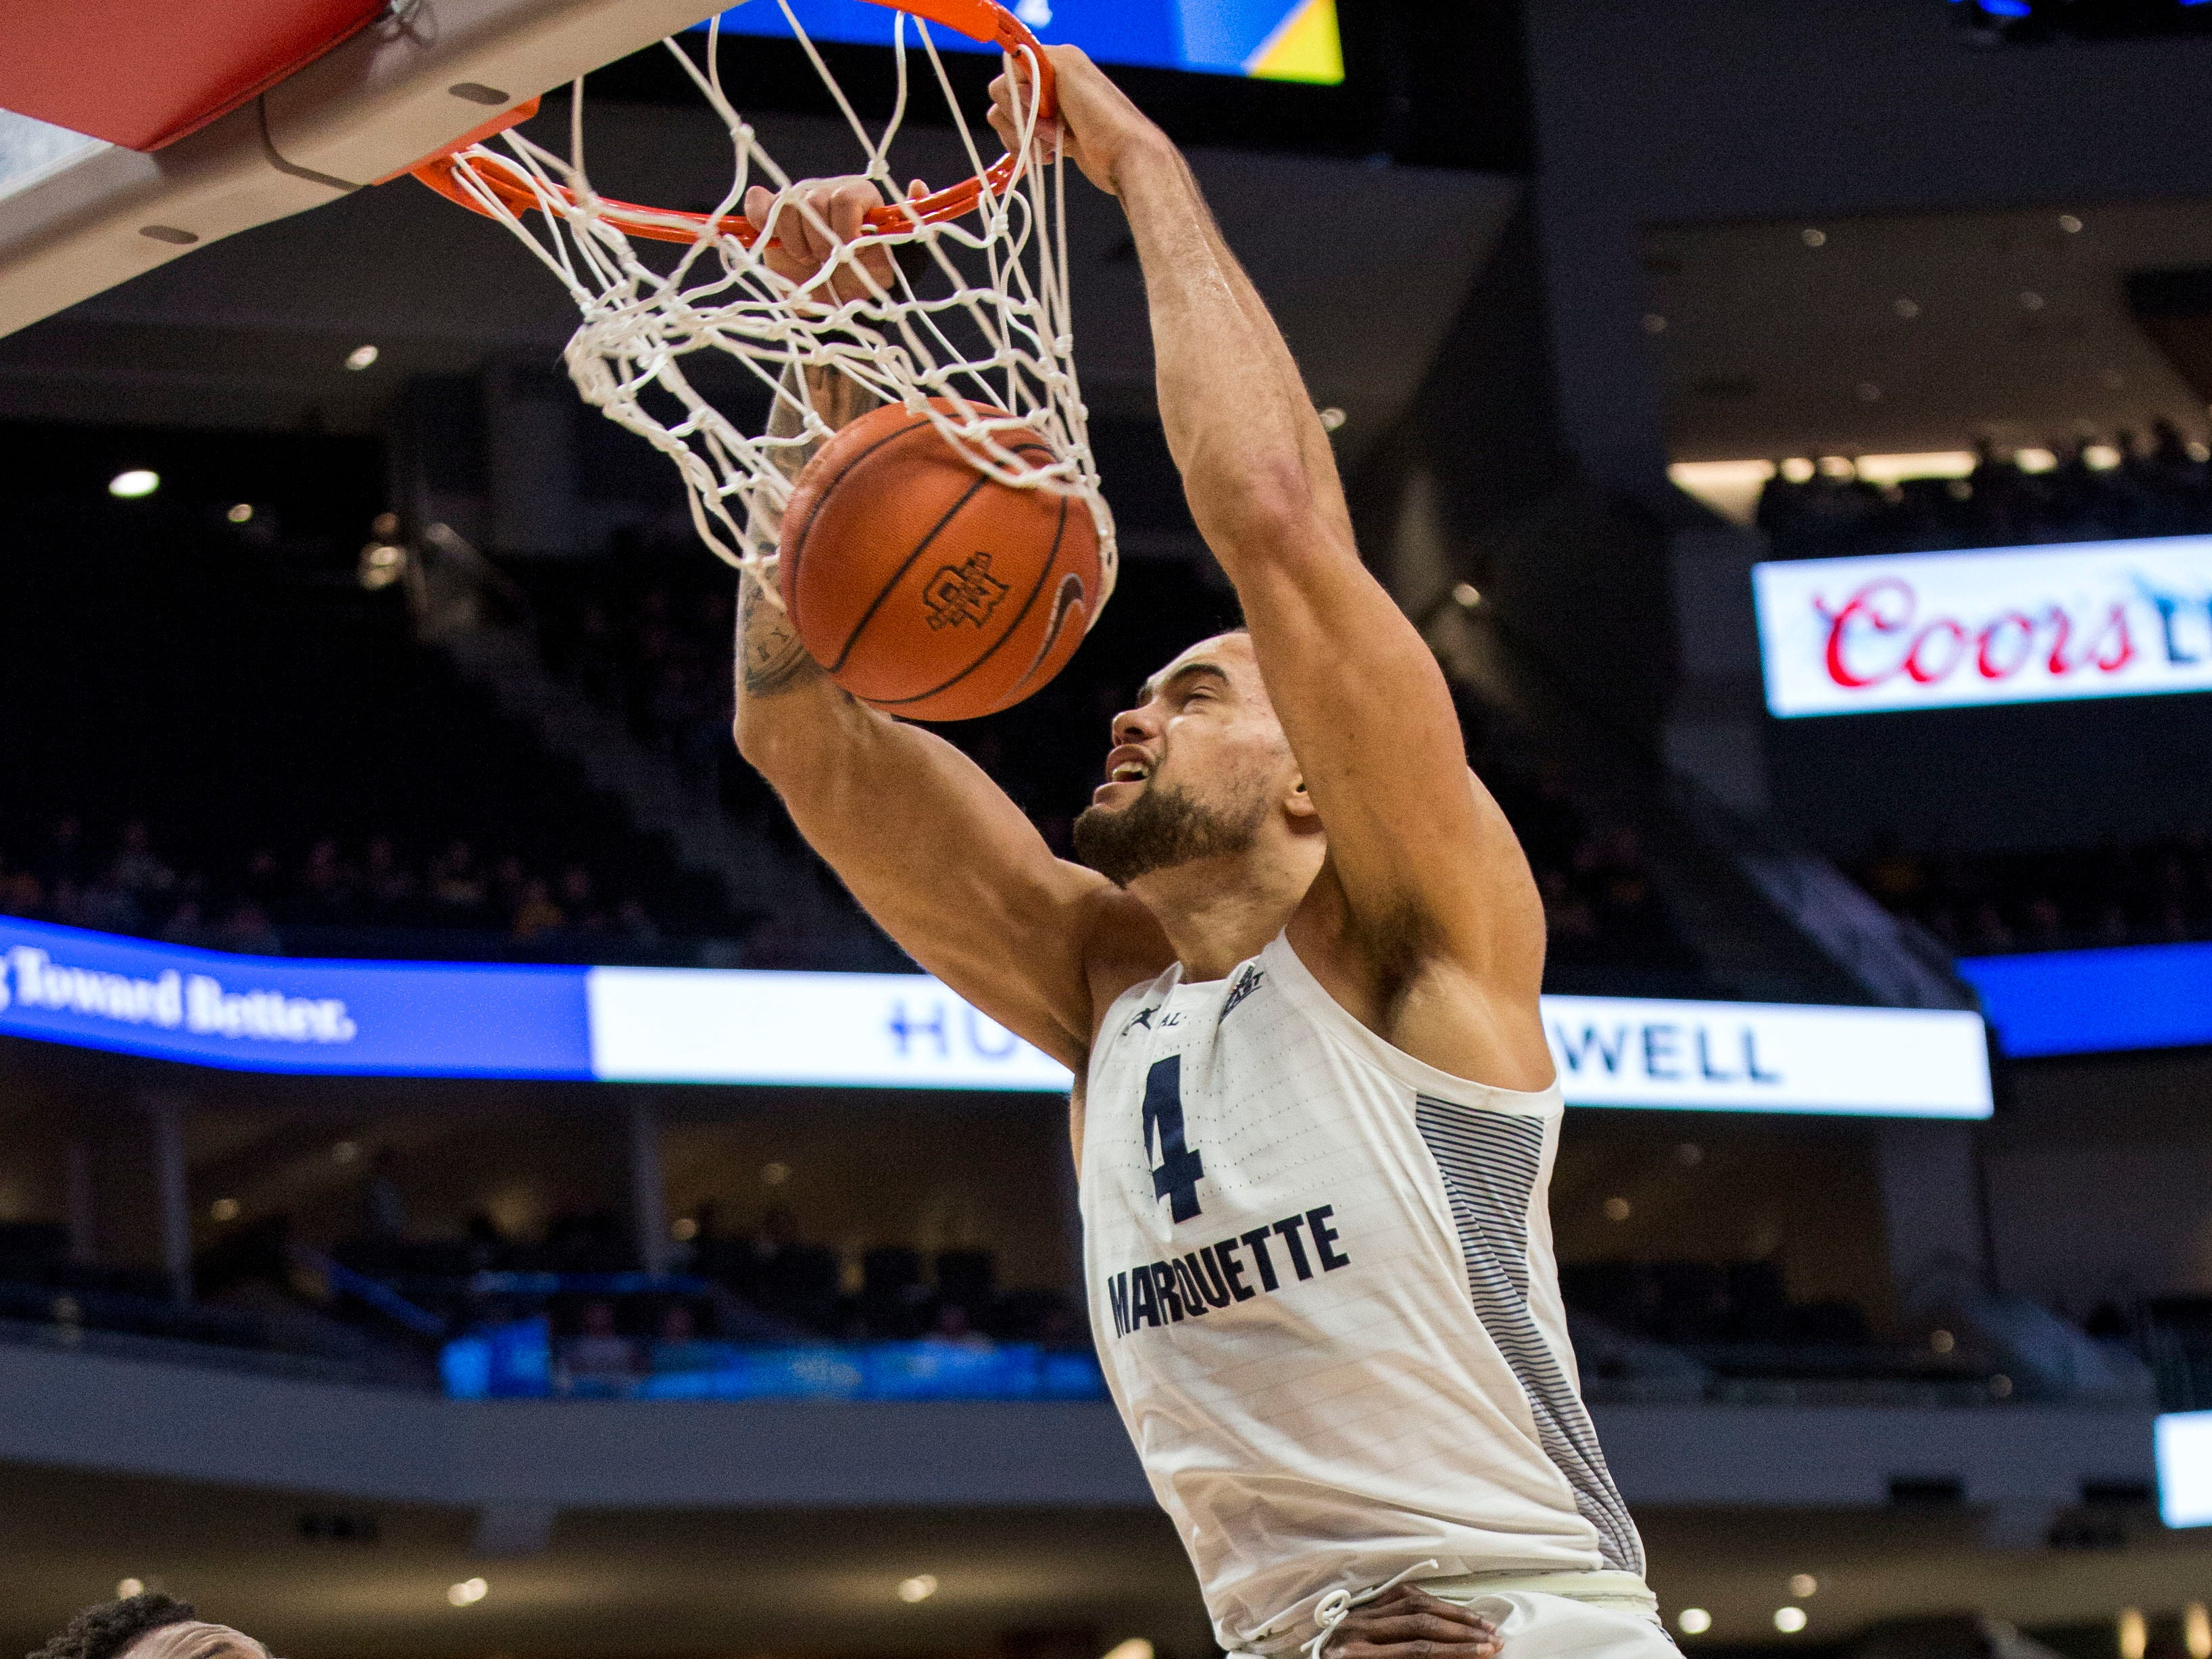 Marquette forward Theo John slams home two points against Southern on Friday night.